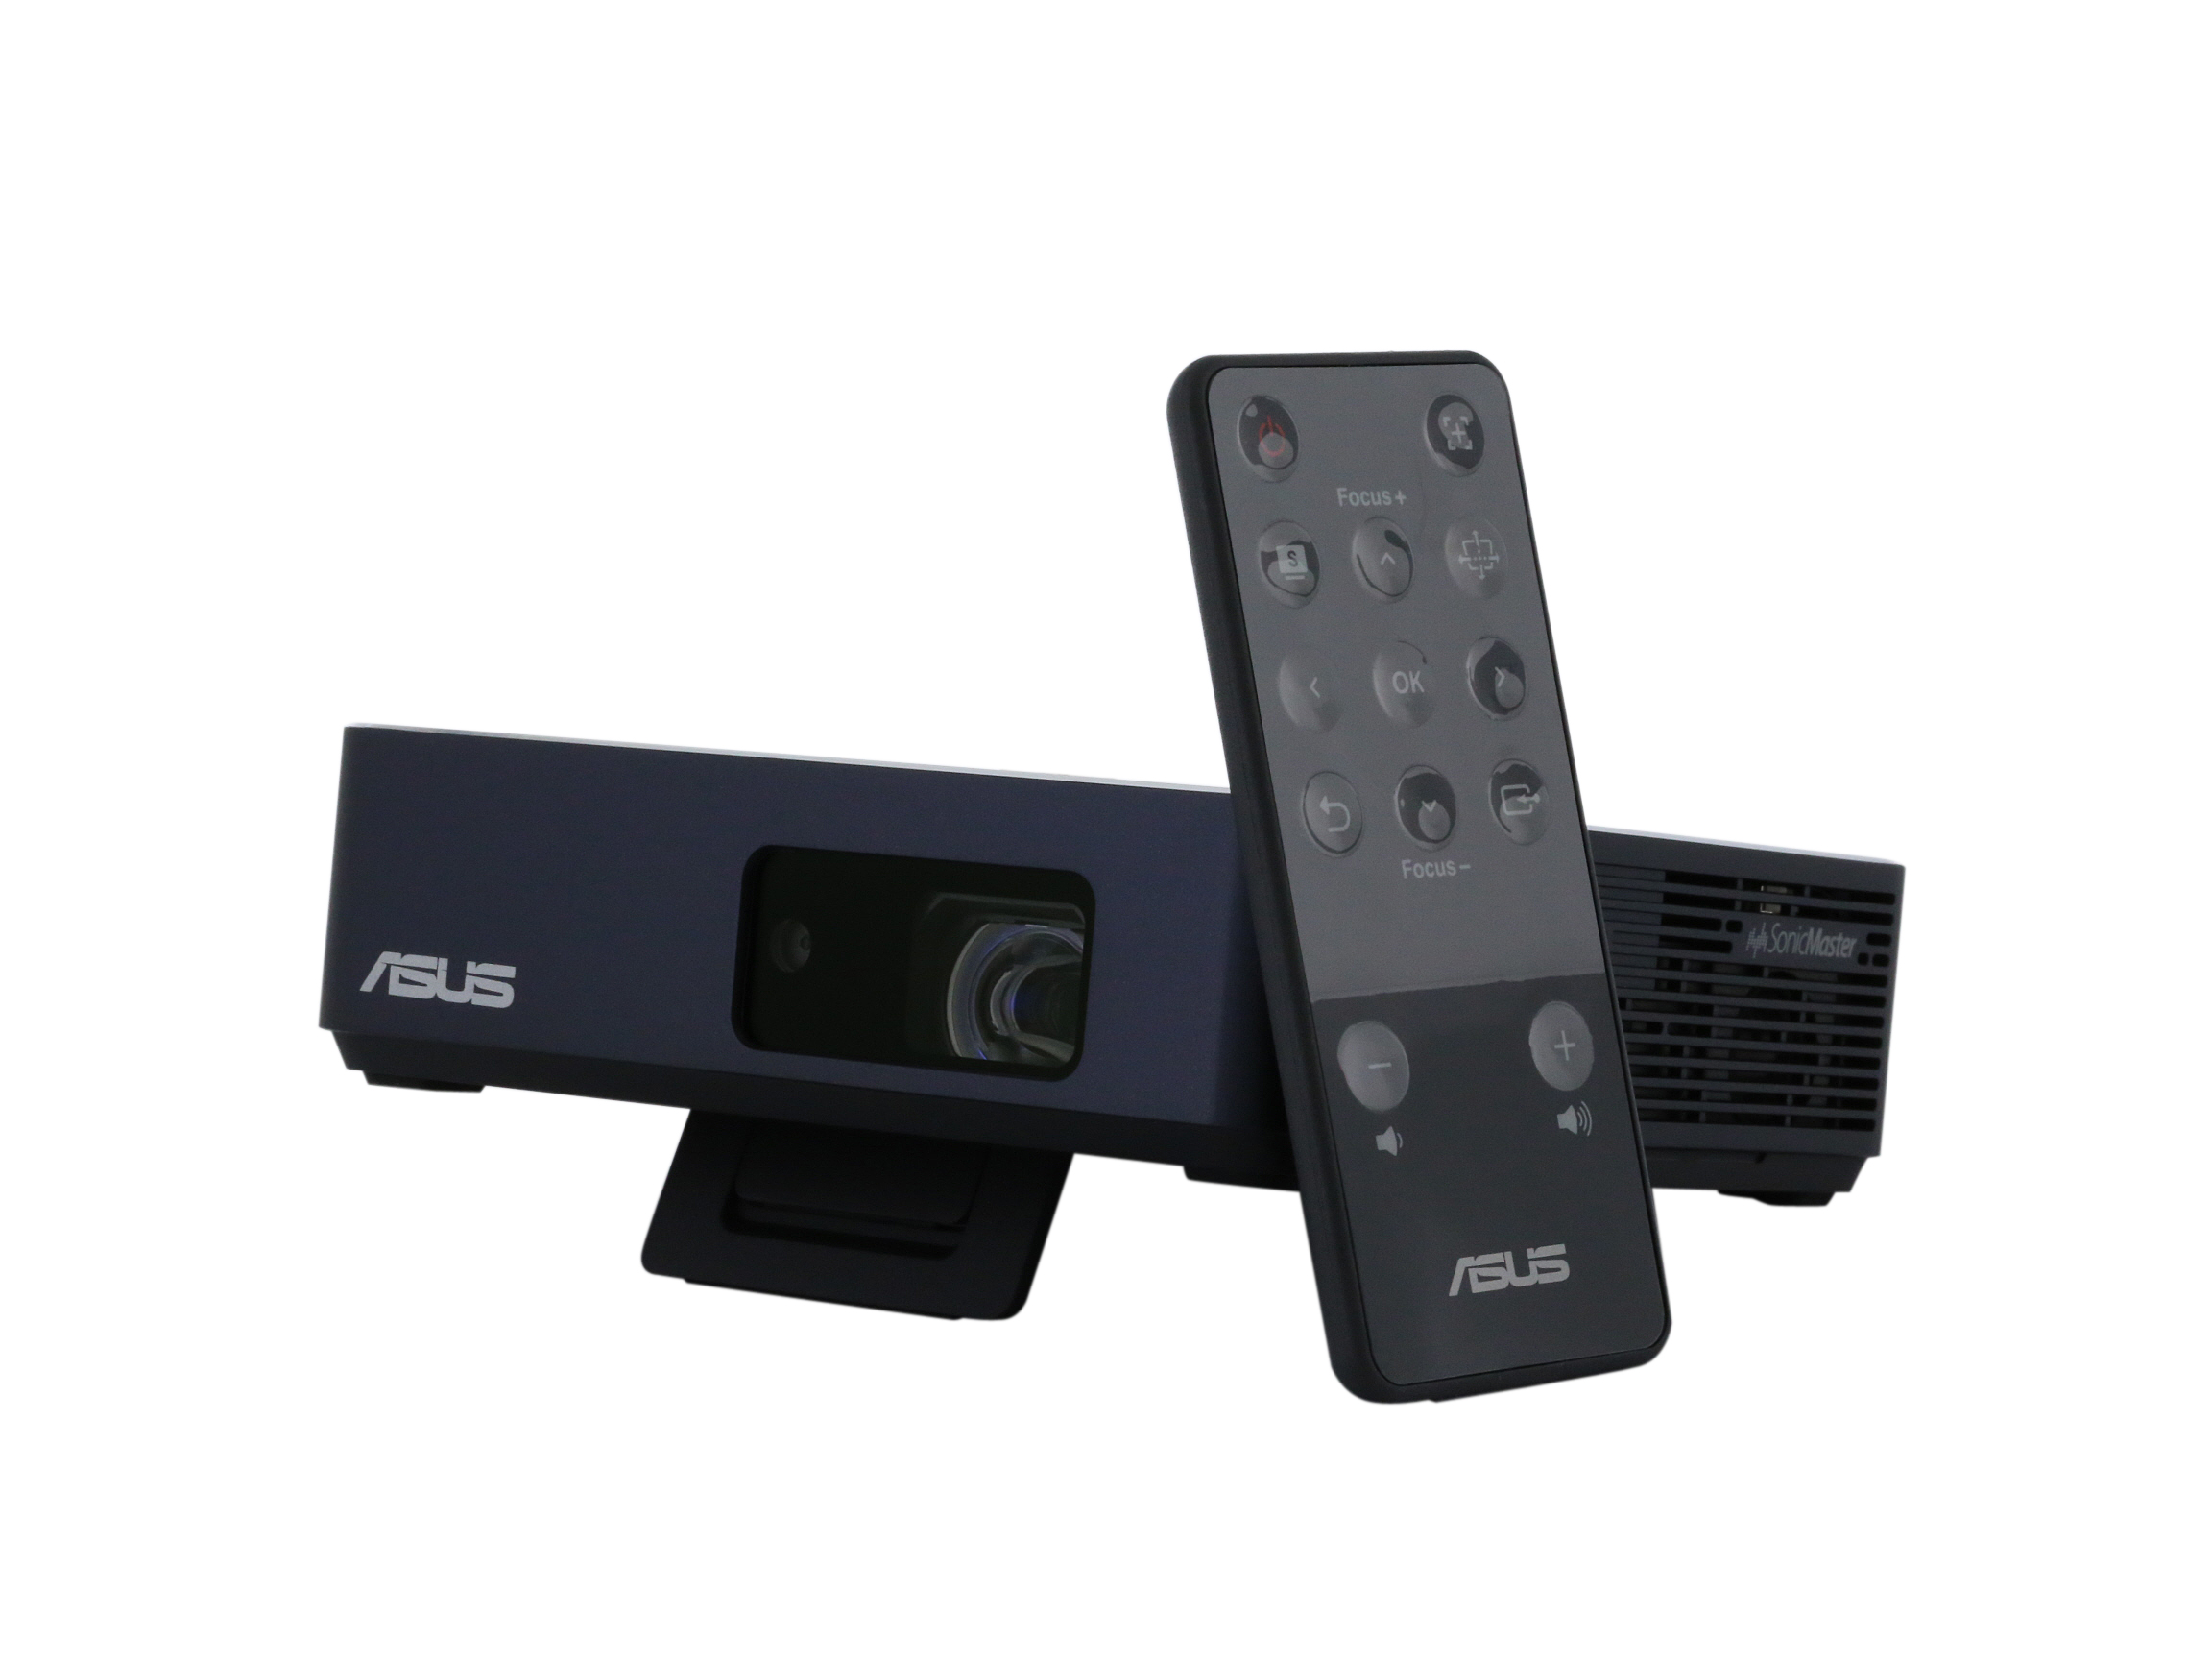 ASUS ZenBeam S2 LED Projector